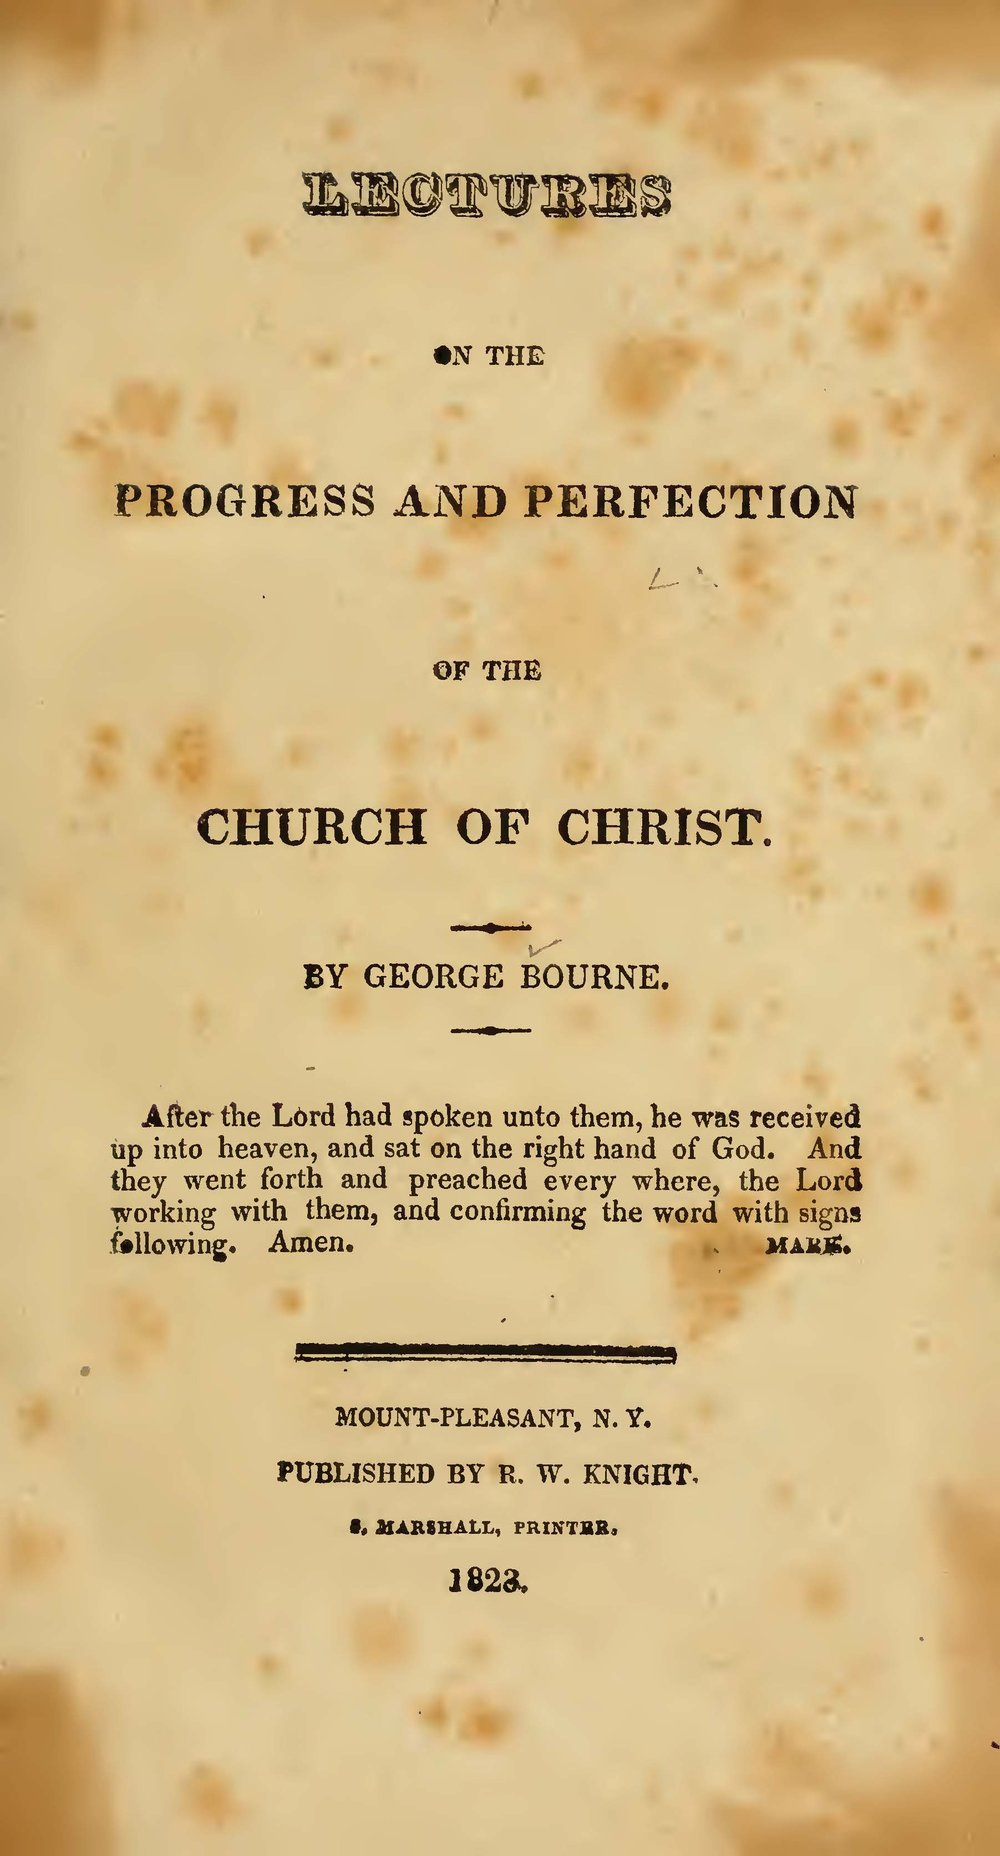 Bourne, George, Lectures on the Progress and Perfection of the Church of Christ Title Page.jpg